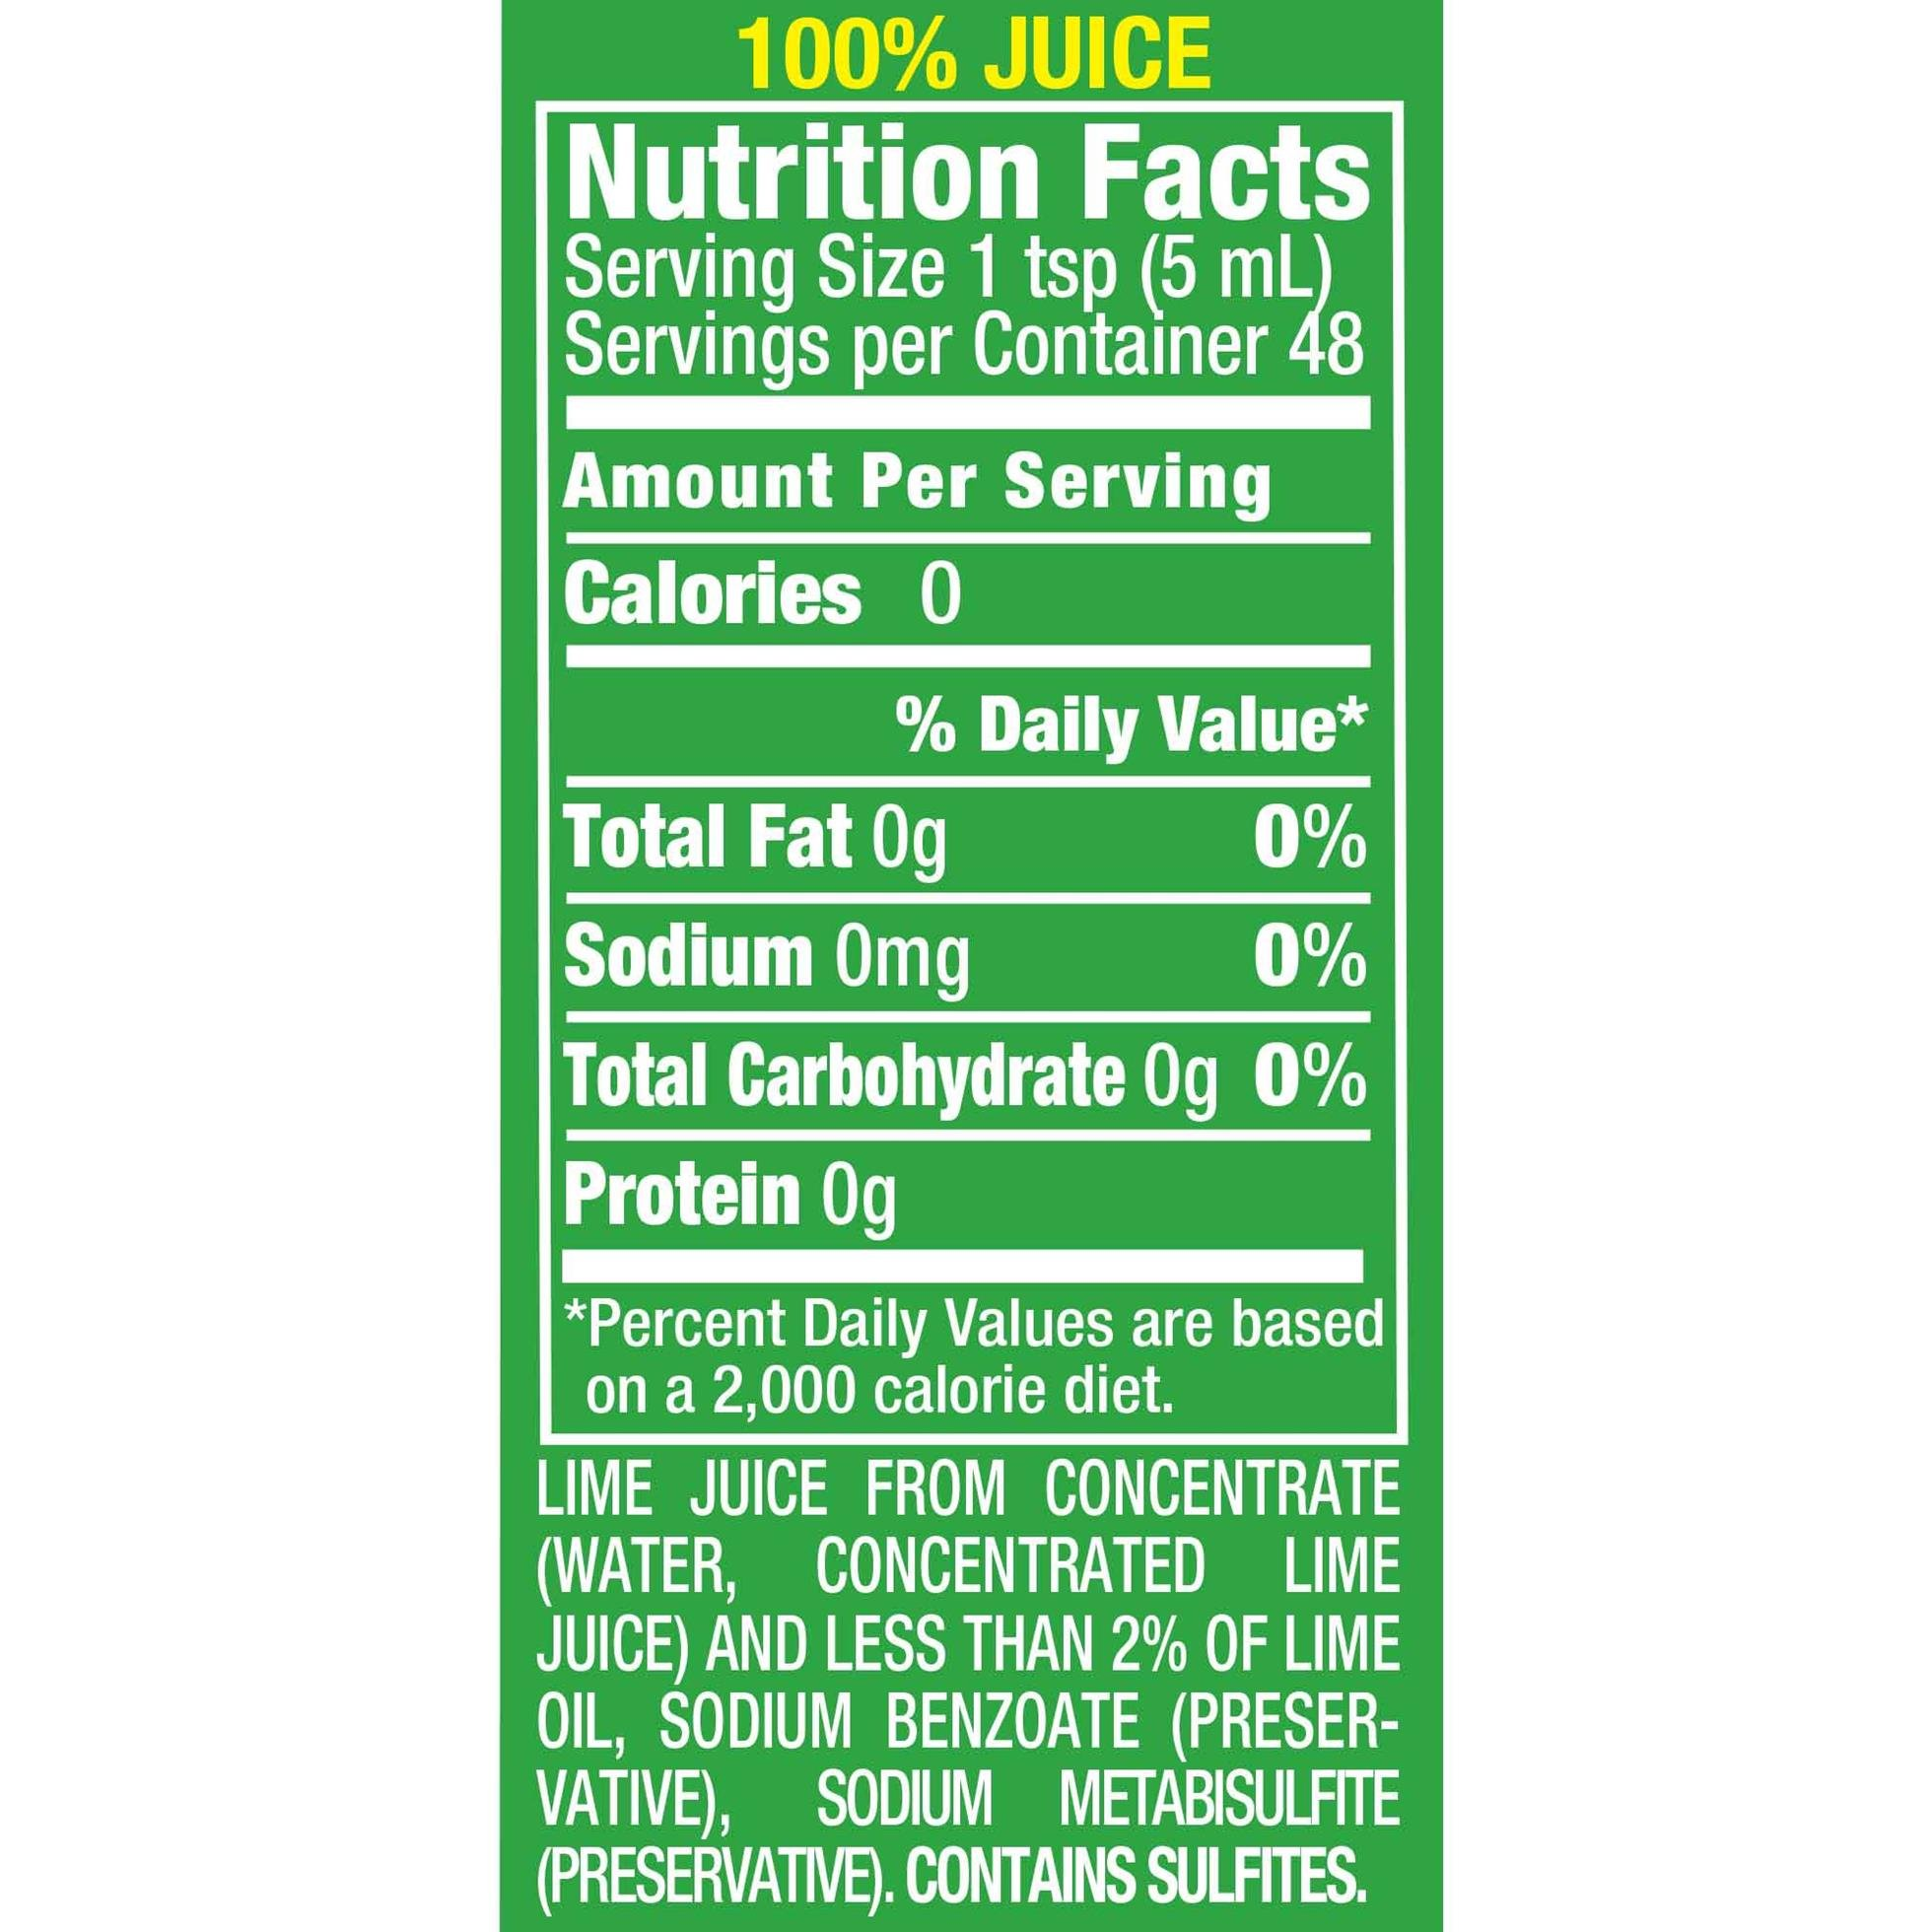 ReaLime 100% Lime Juice, 8 fl oz bottles (Pack of 12) by Realime (Image #5)